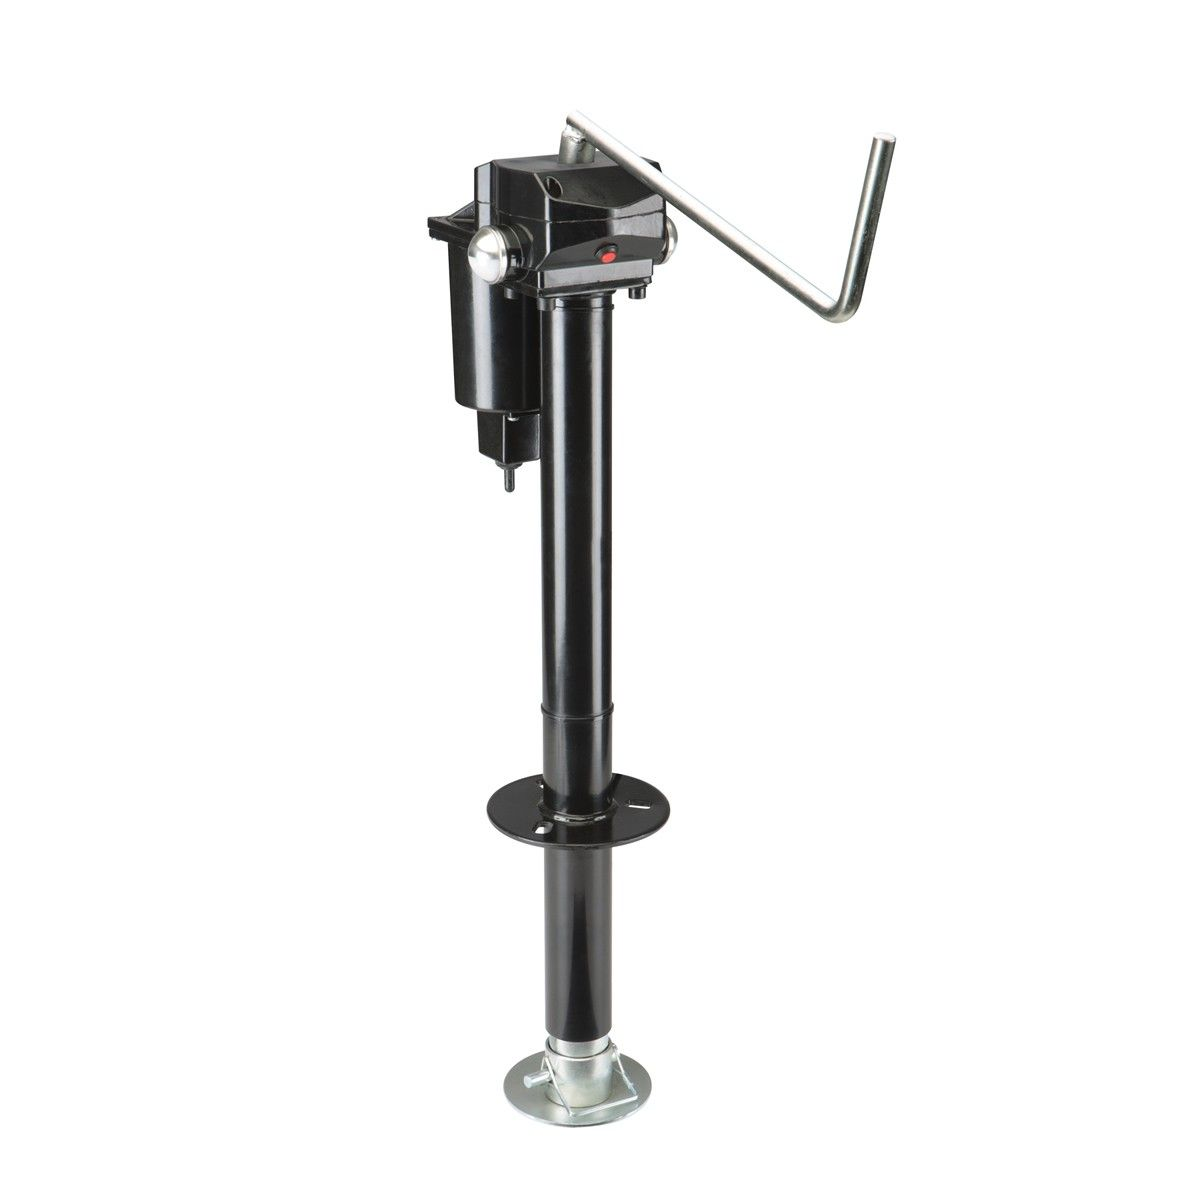 hight resolution of haul master 69899 3500 lb capacity electric trailer jack